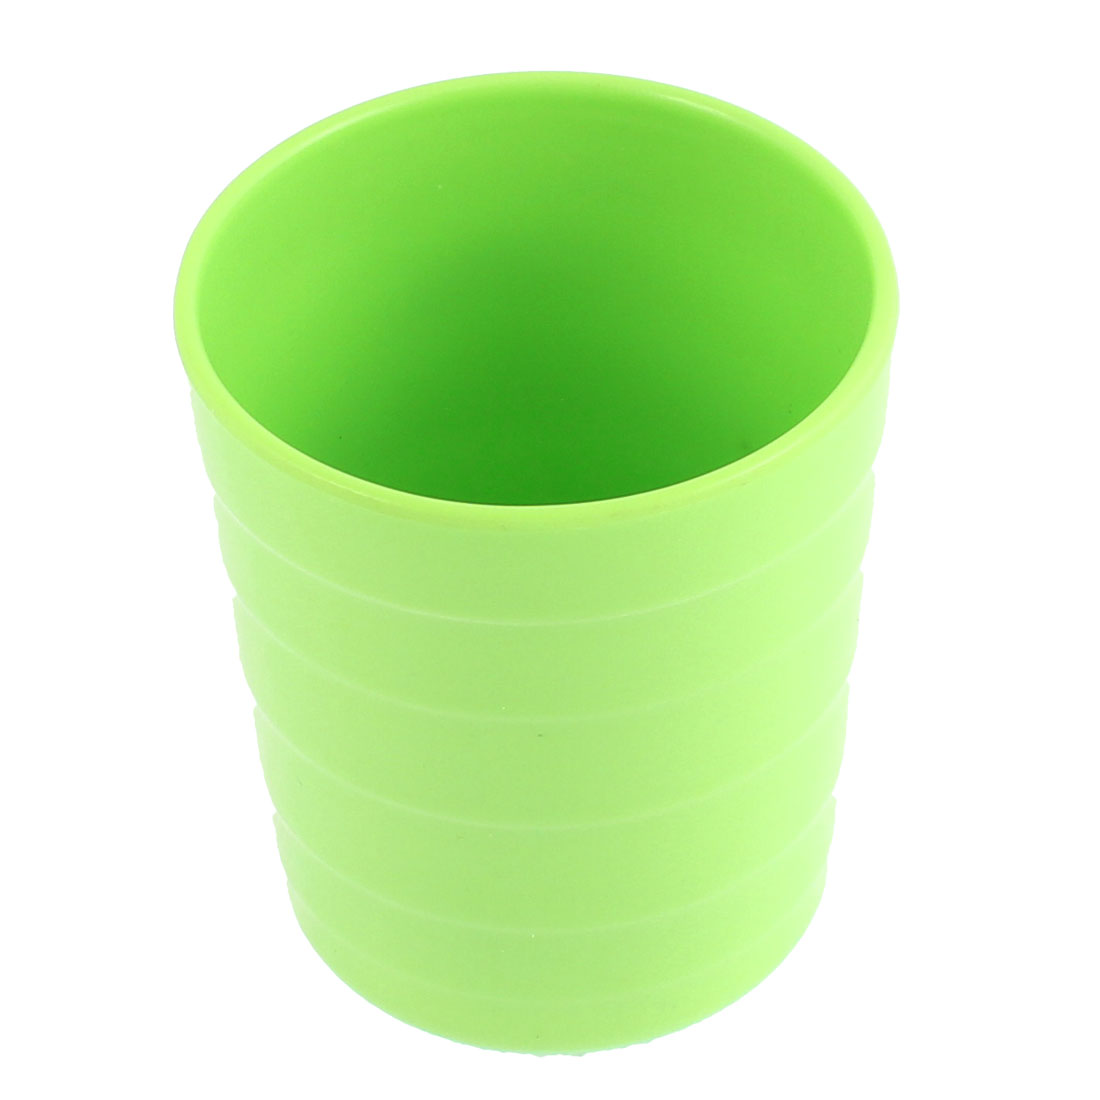 Restaurant Plastic Water Tea Coffee Wine Drinking Cup Green 8cm Height